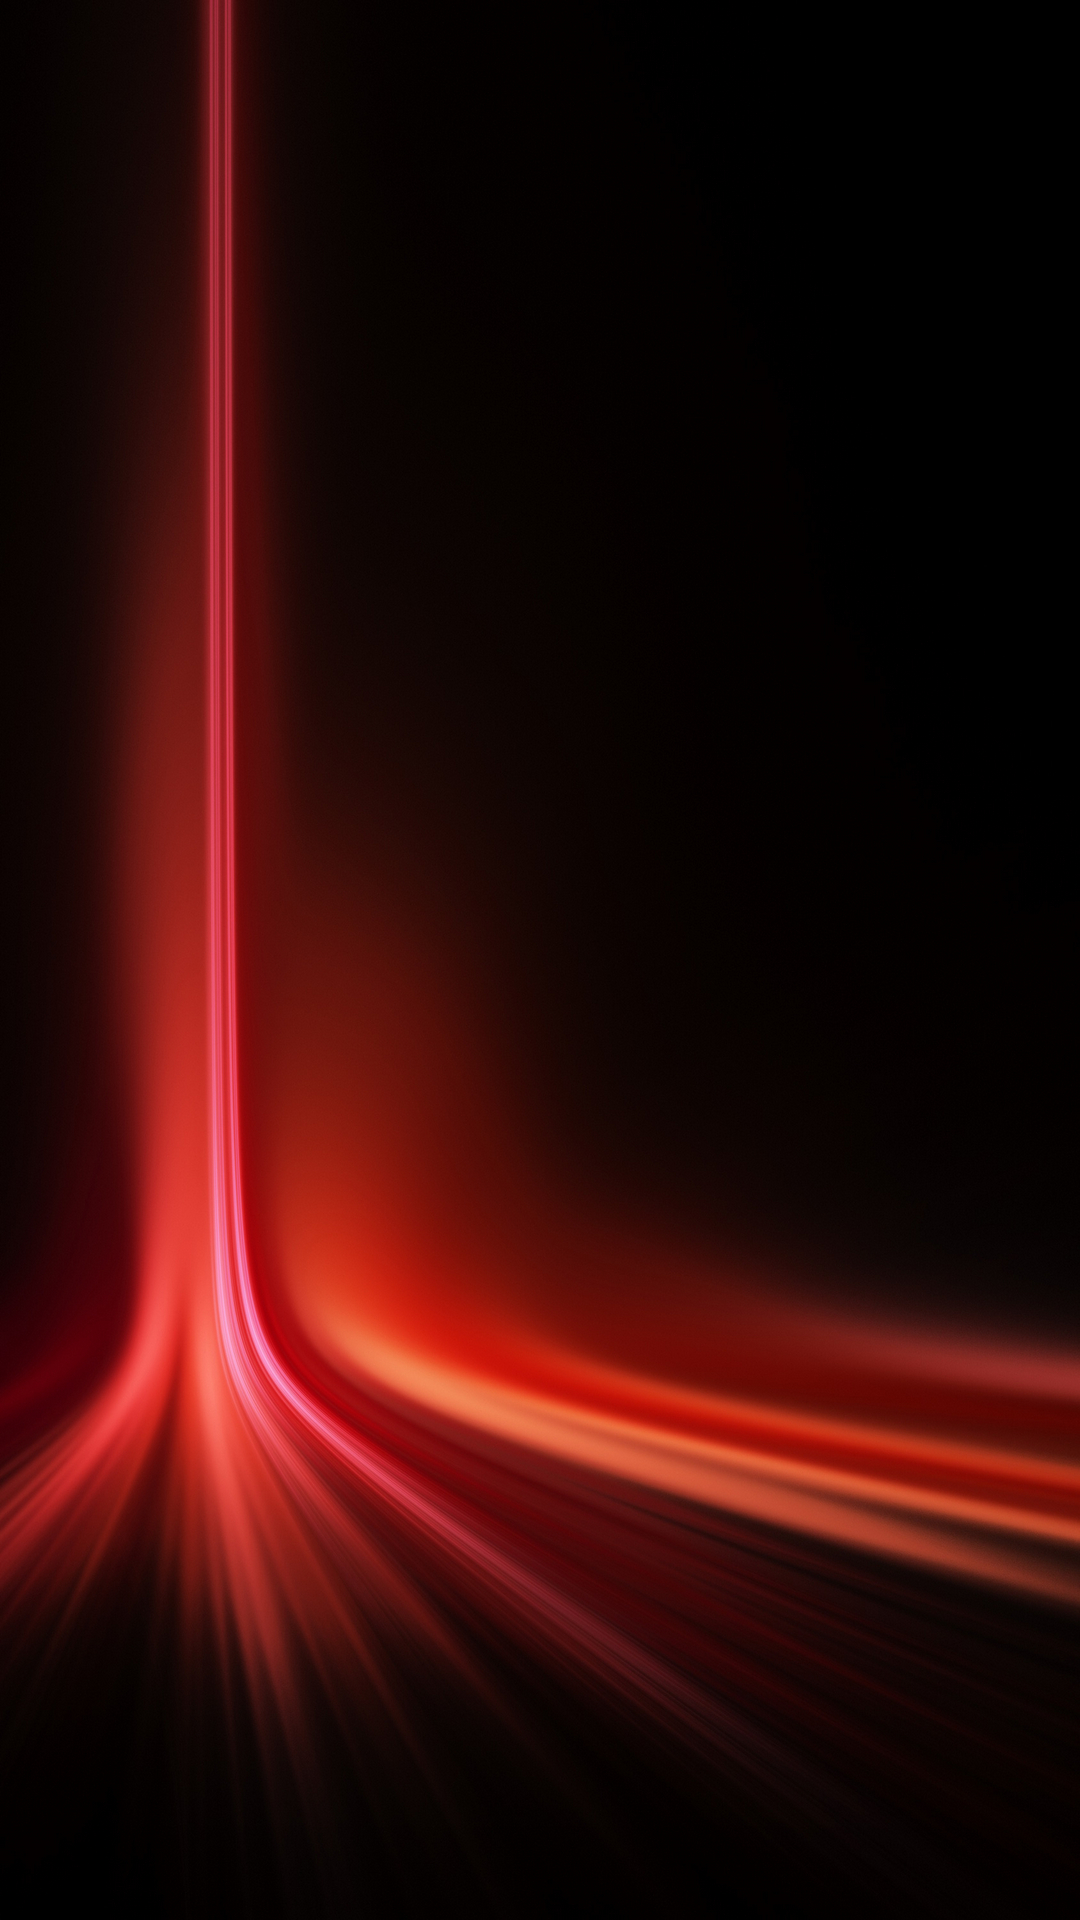 tan vertical wallpaper - photo #20